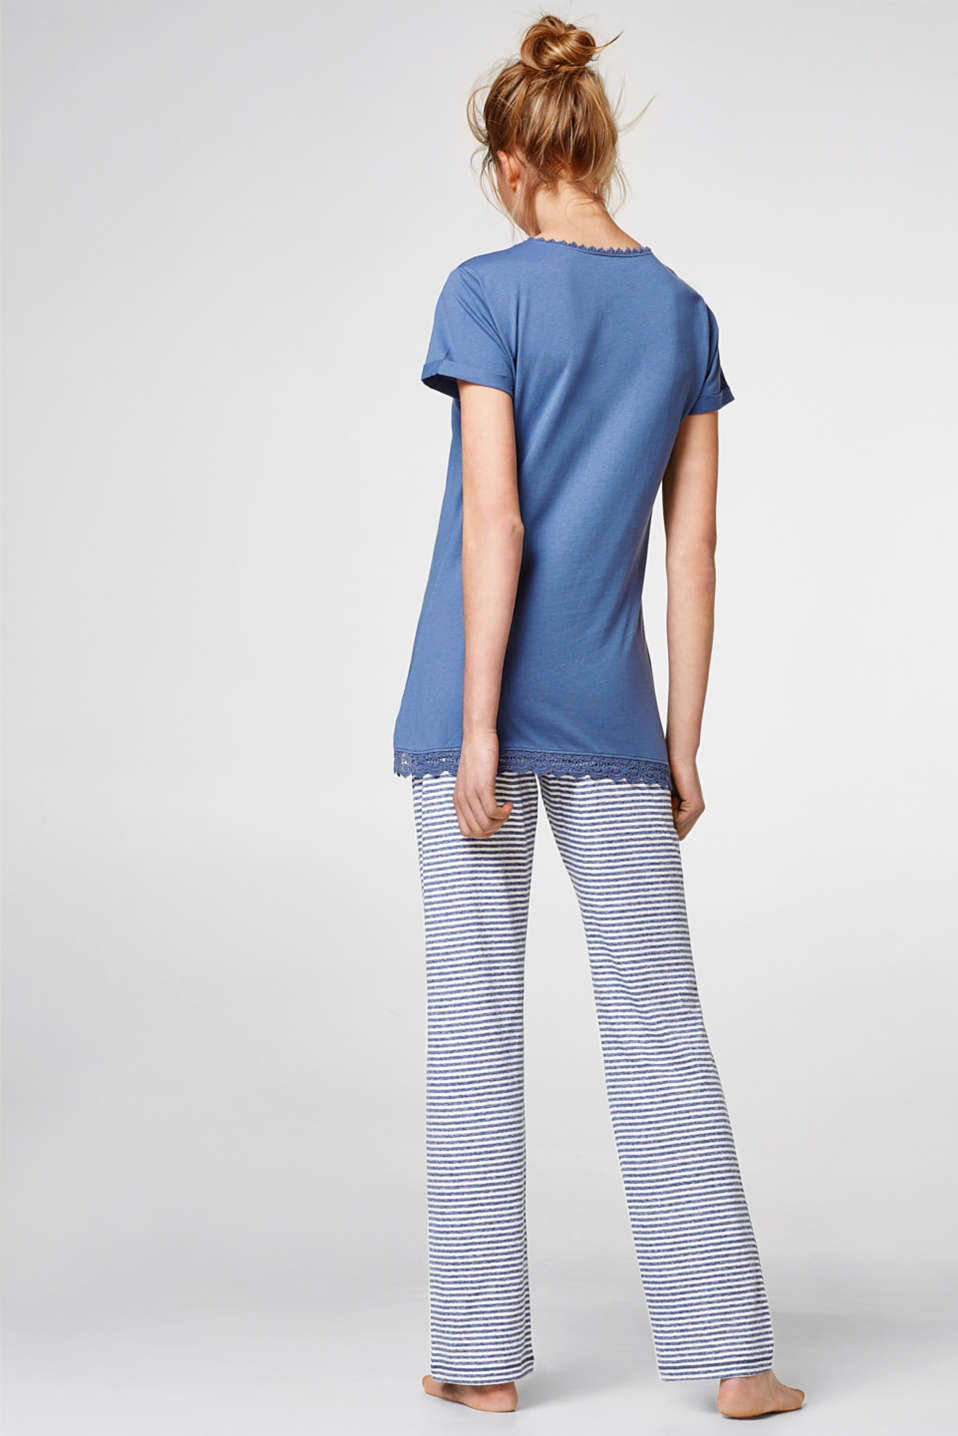 Jersey pyjamas with lace and stripes